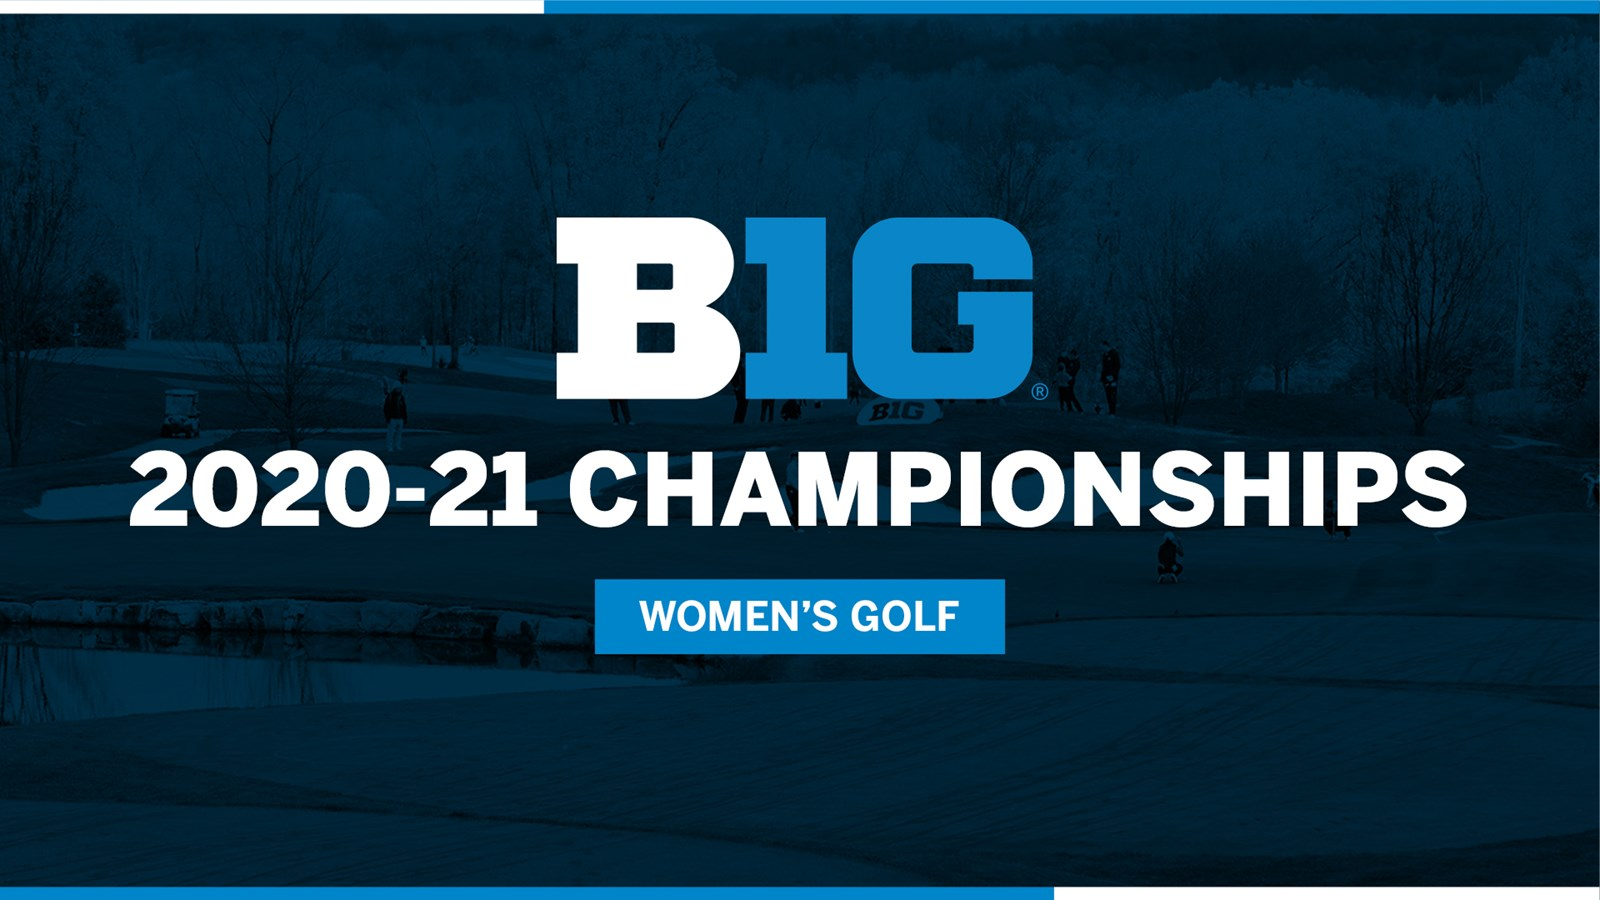 """text-only graphic reads """"B1G 2020-21 Championship - Women's Golf"""""""